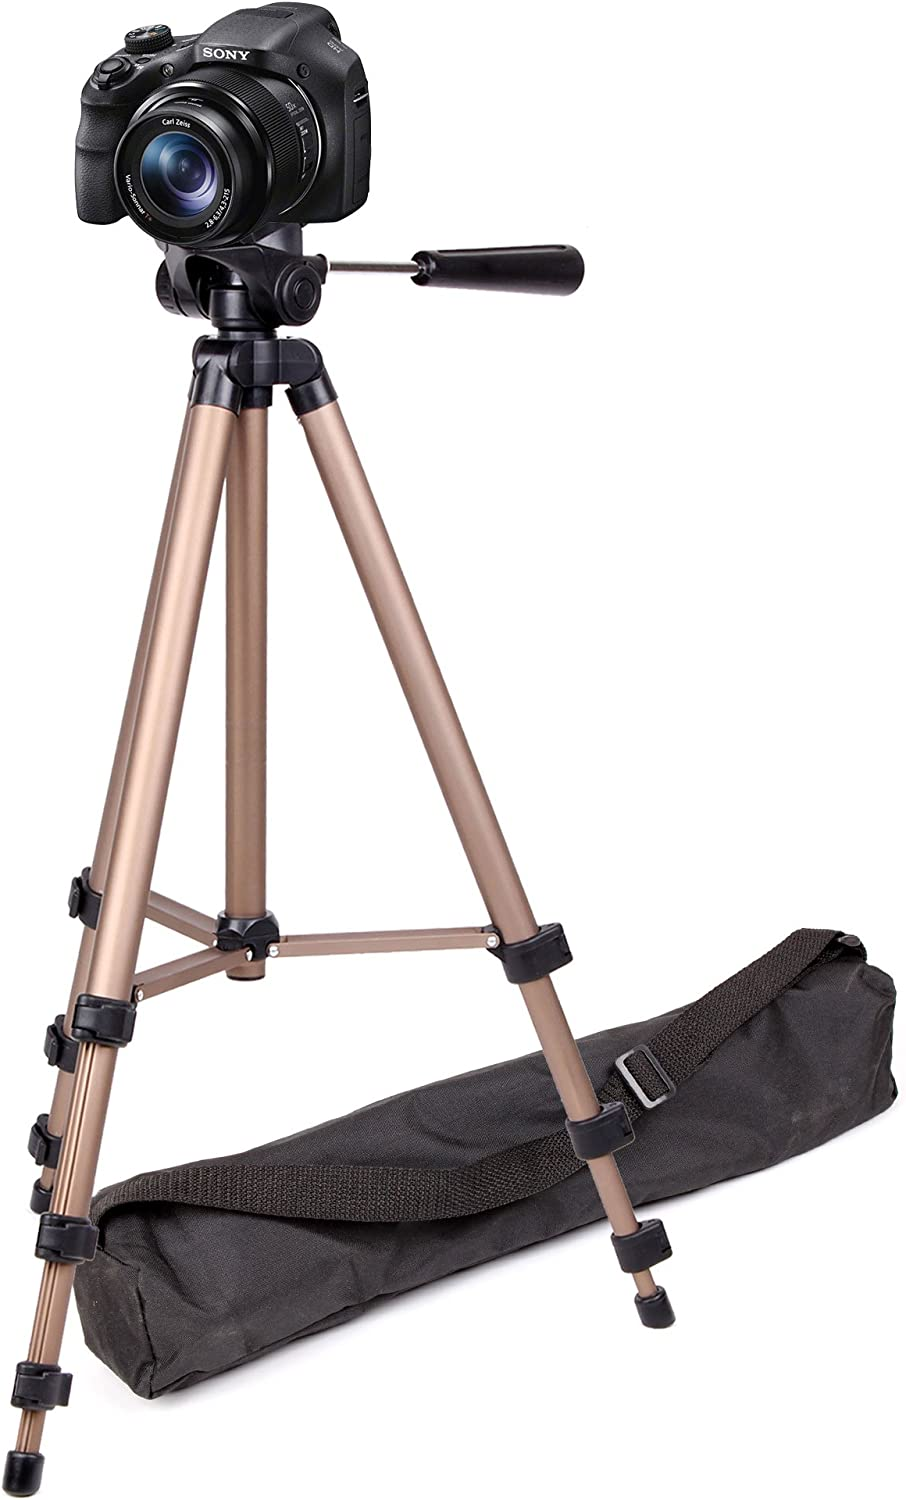 Compatible with The Sony DSC-HX90 DURAGADGET Professional Tough Versatile Sturdy Tripod with 3D Ball Head